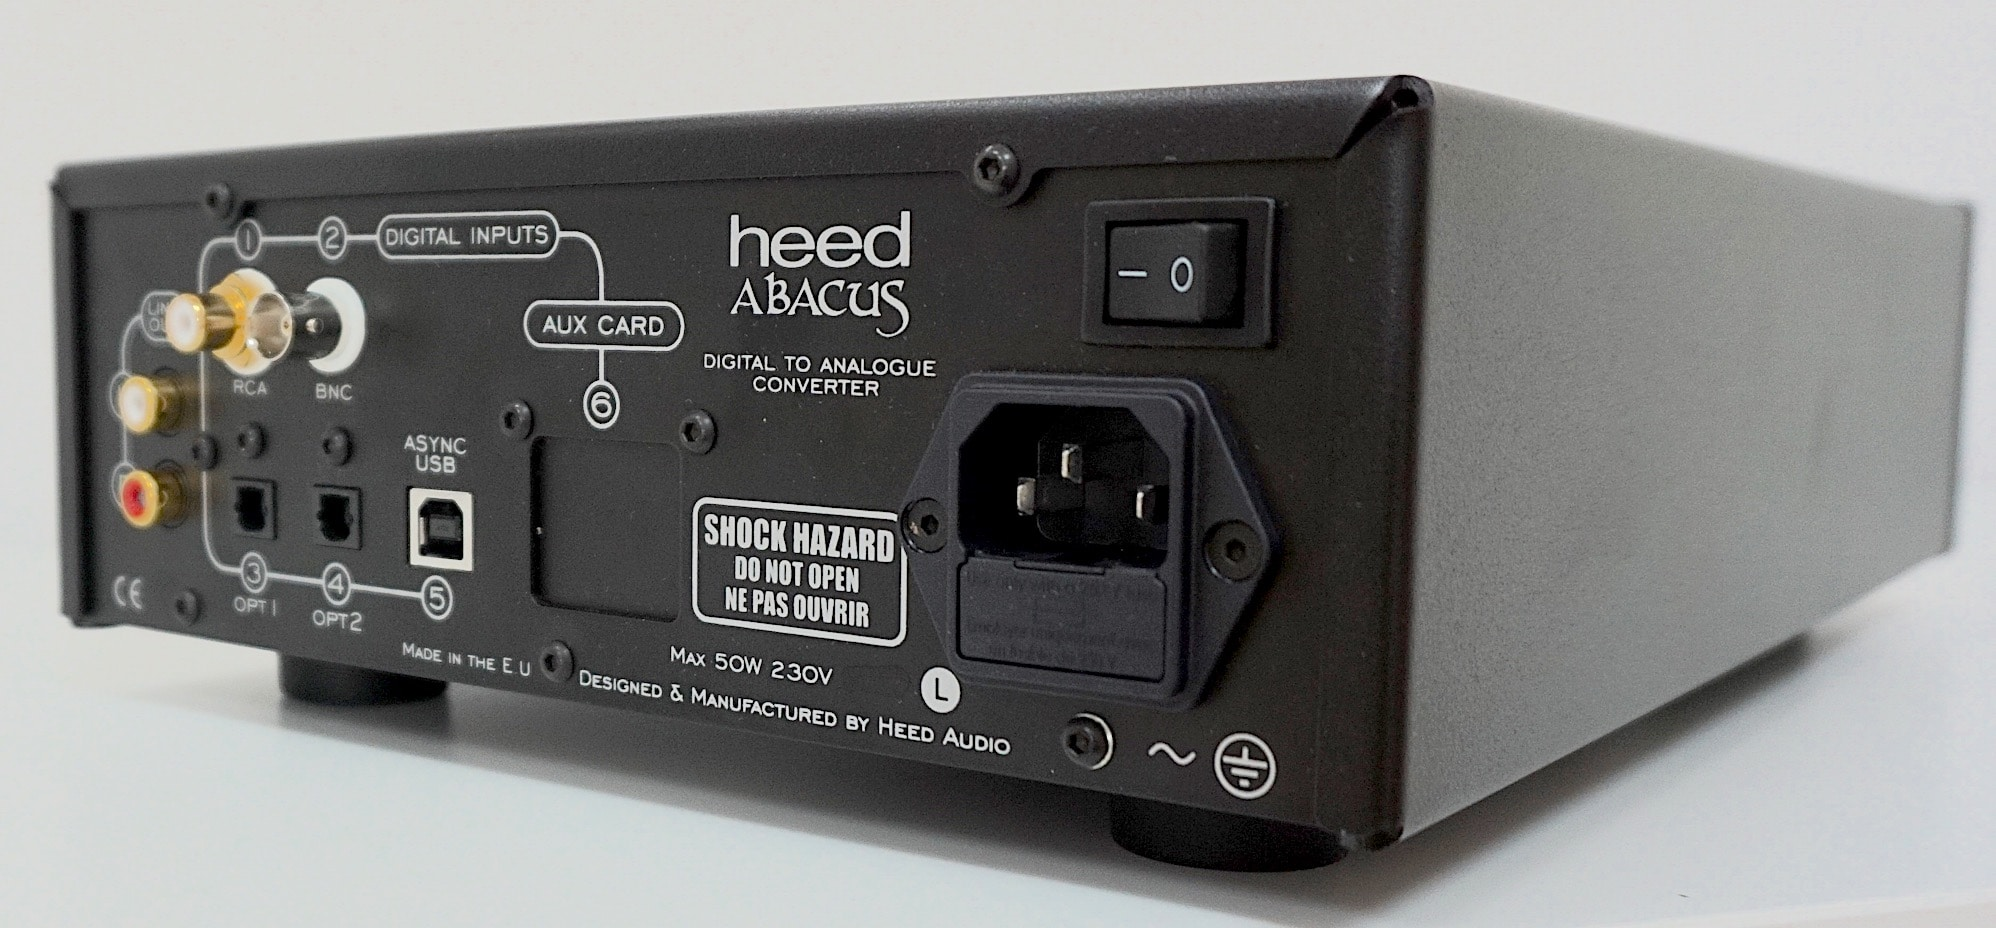 Abacus DAC From Heed: The Digital Gentleman